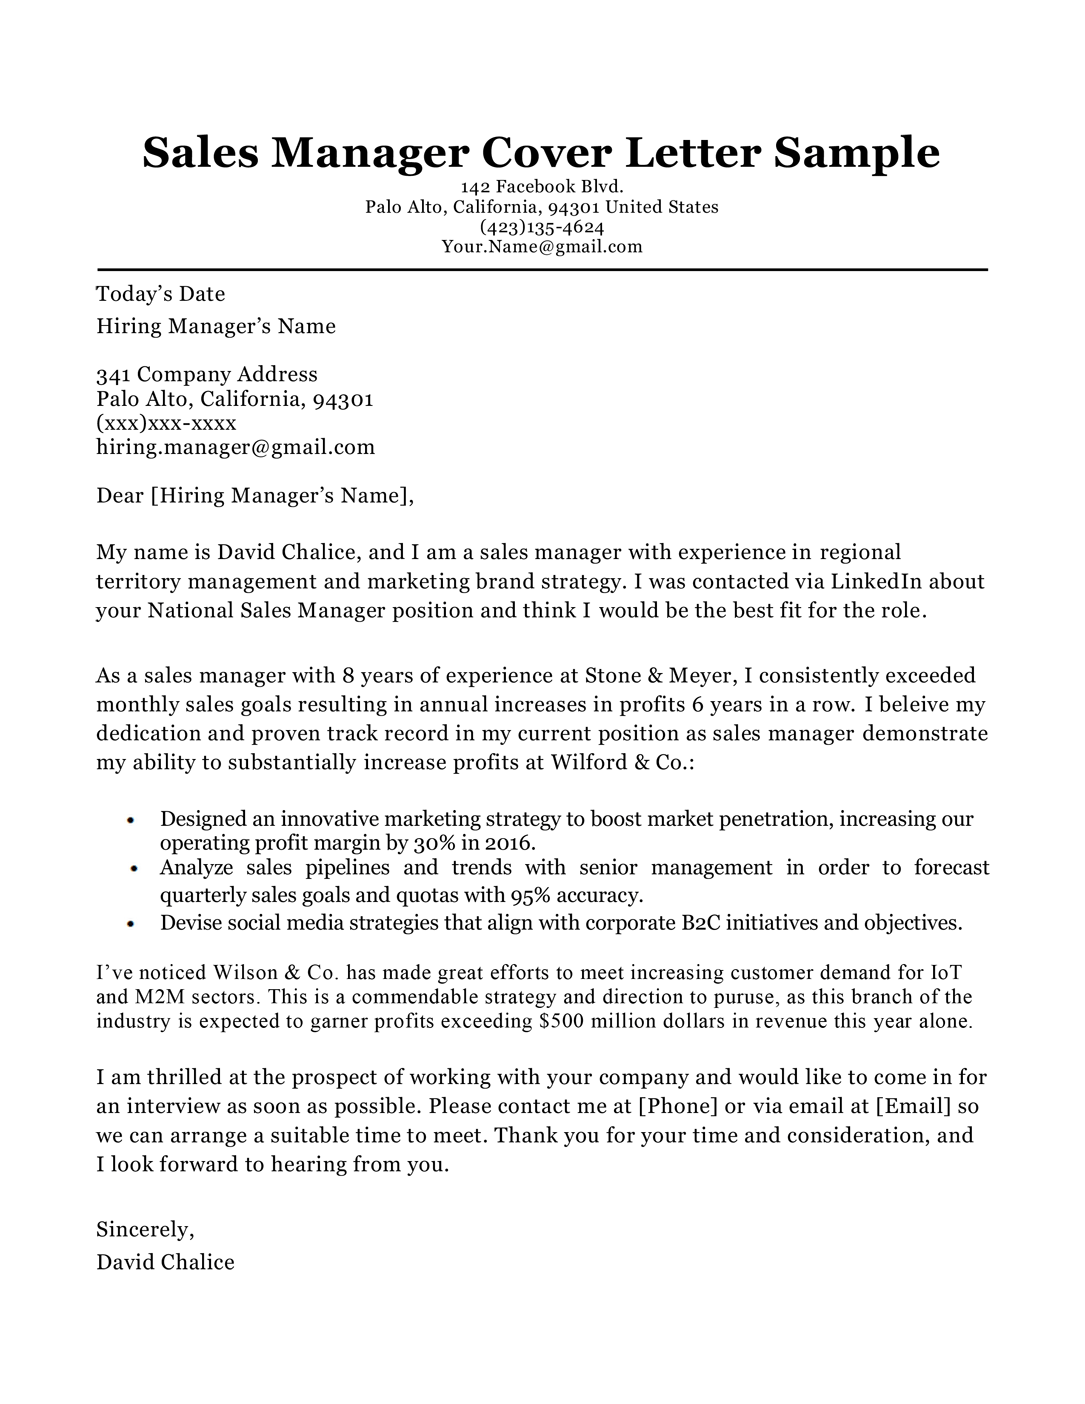 Manager Cover Letter Templates from resumecompanion.com